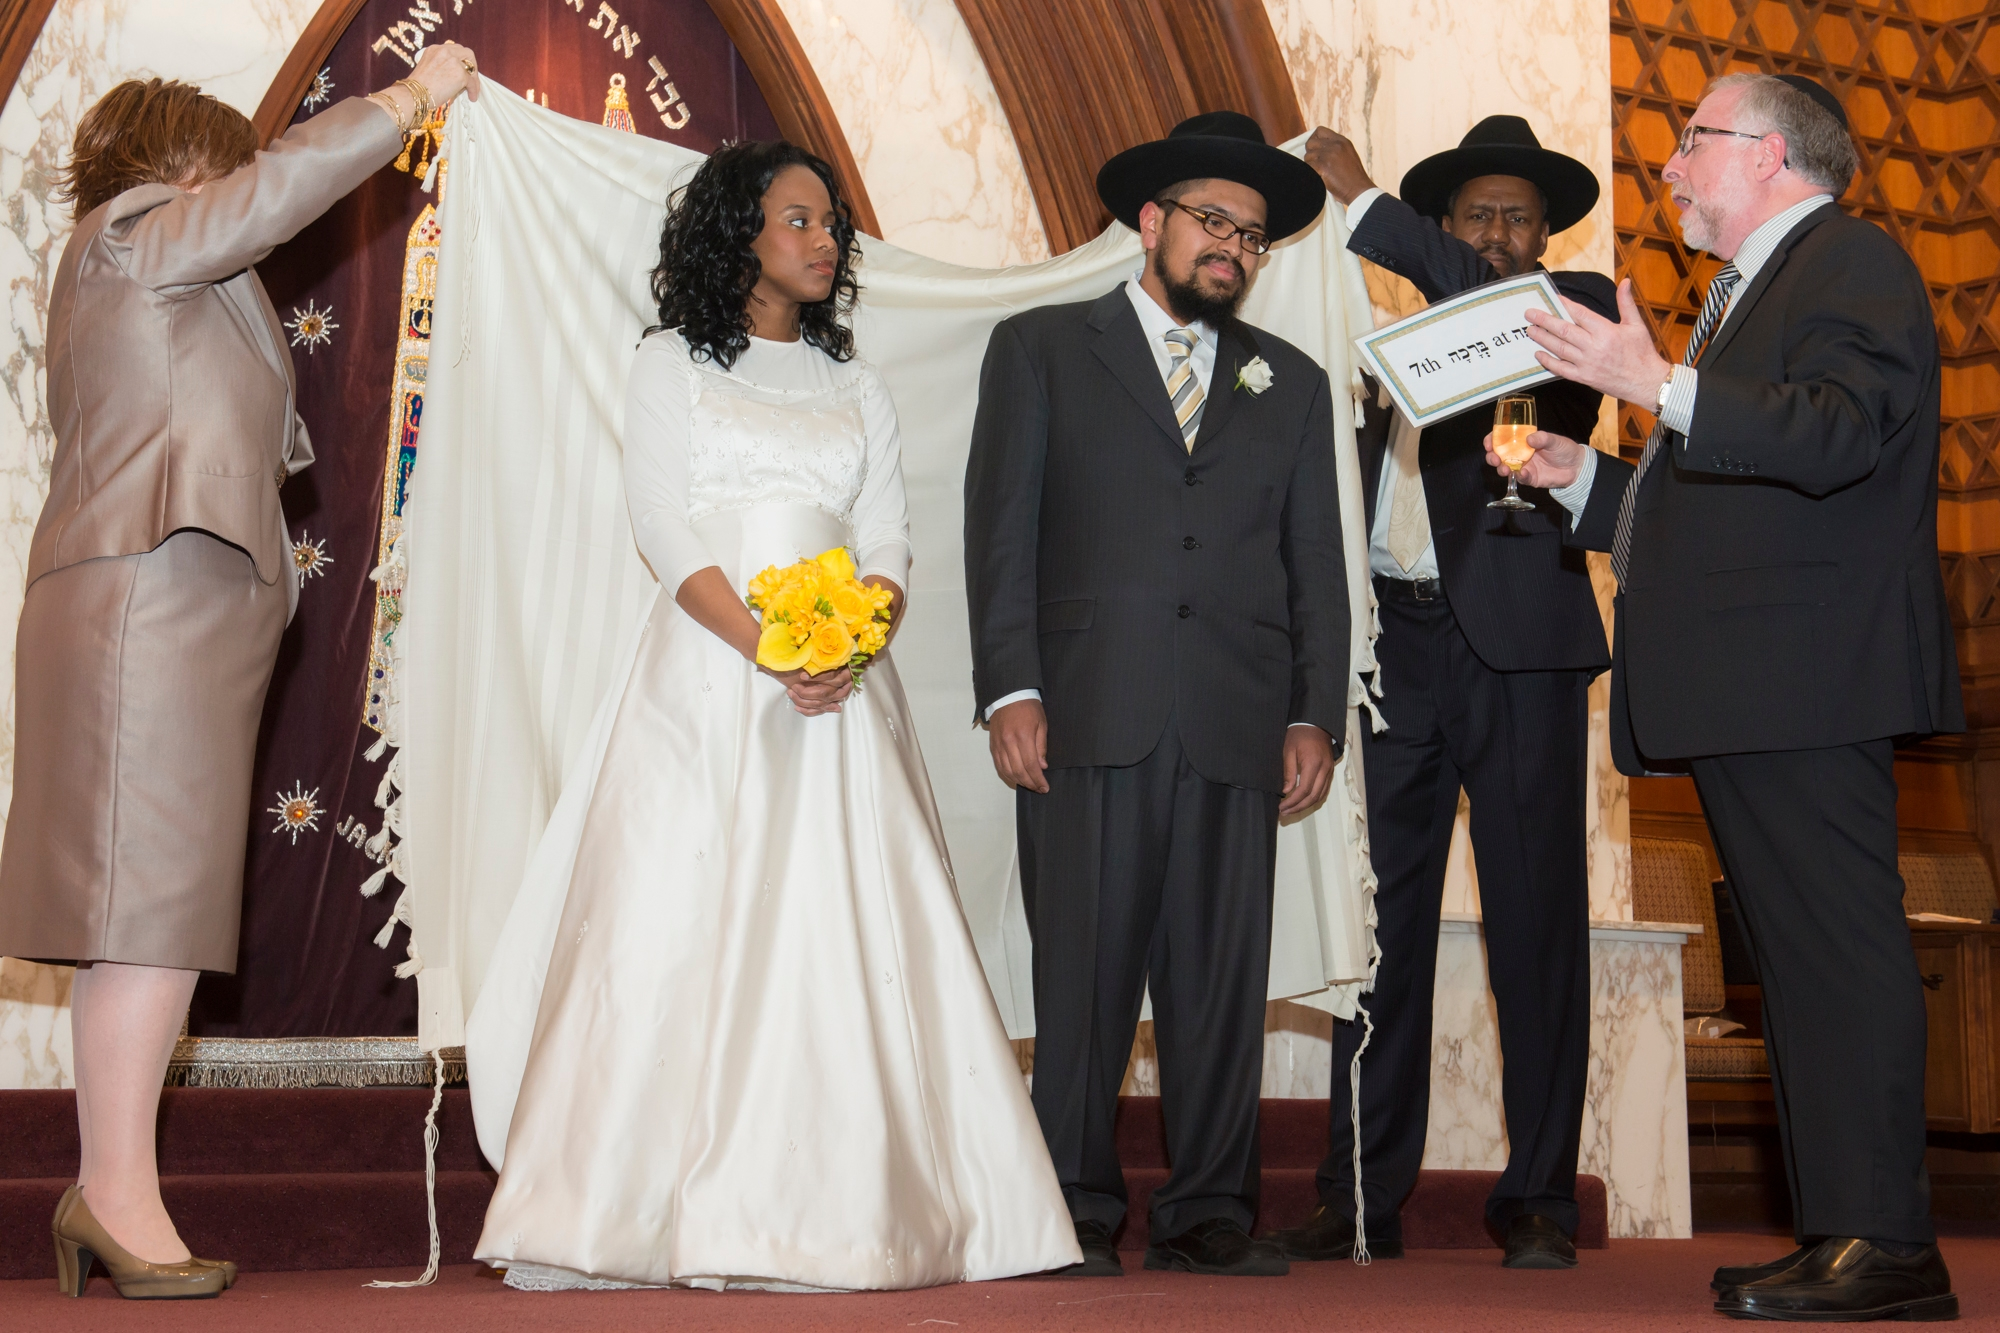 Rabbi Simon Benzaquen Recites The Sheva Brachot At Wedding Of Chana And Yosef Brown In